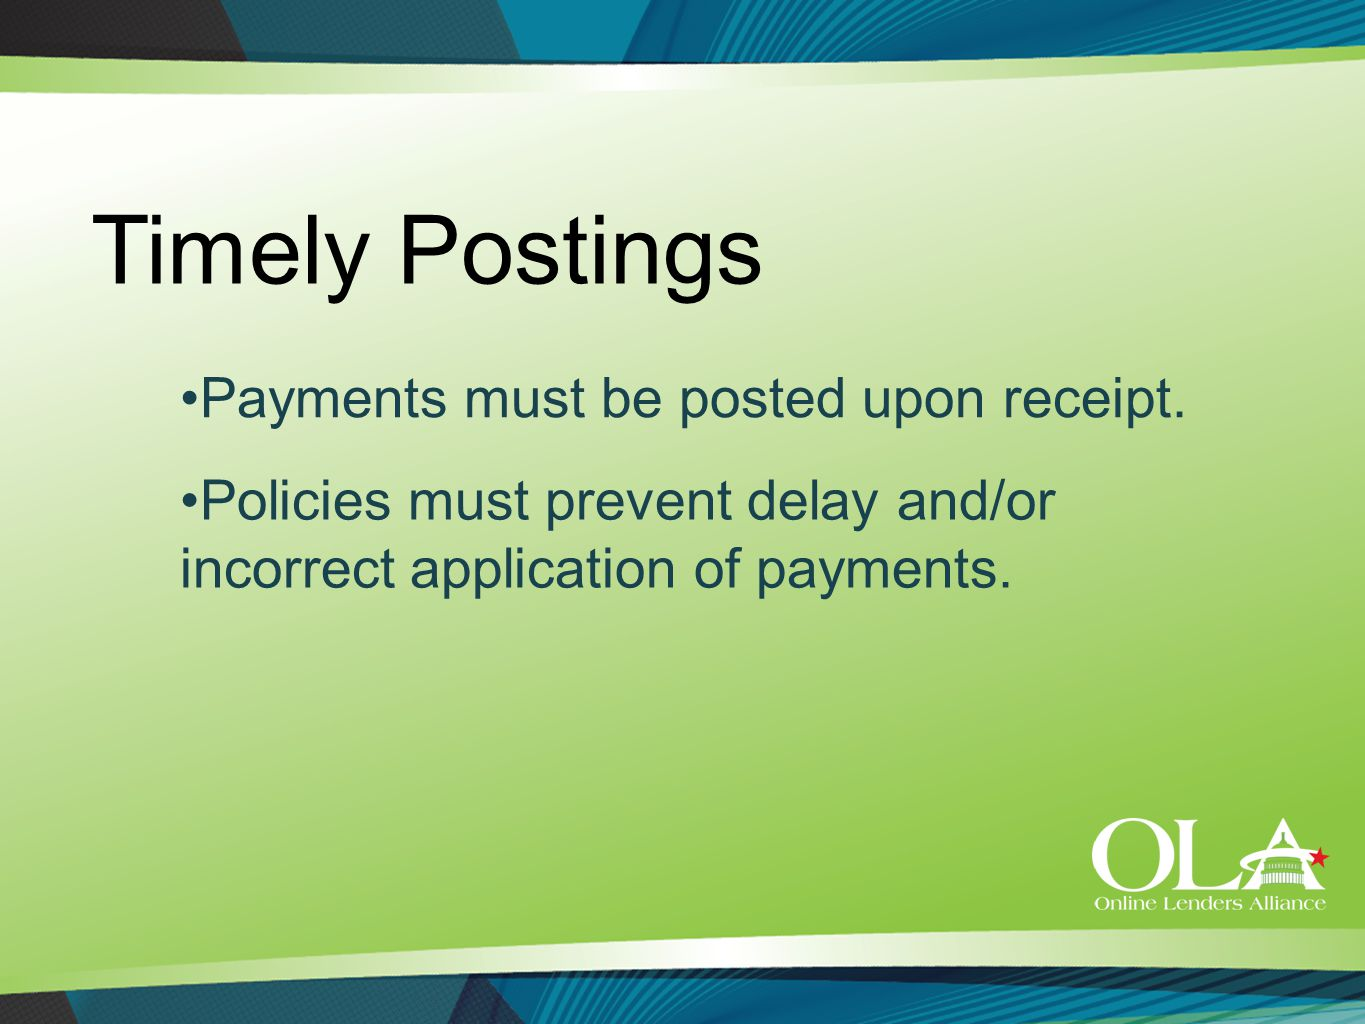 Timely Postings Policies must prevent delay and/or incorrect application of payments. Payments must be posted upon receipt.